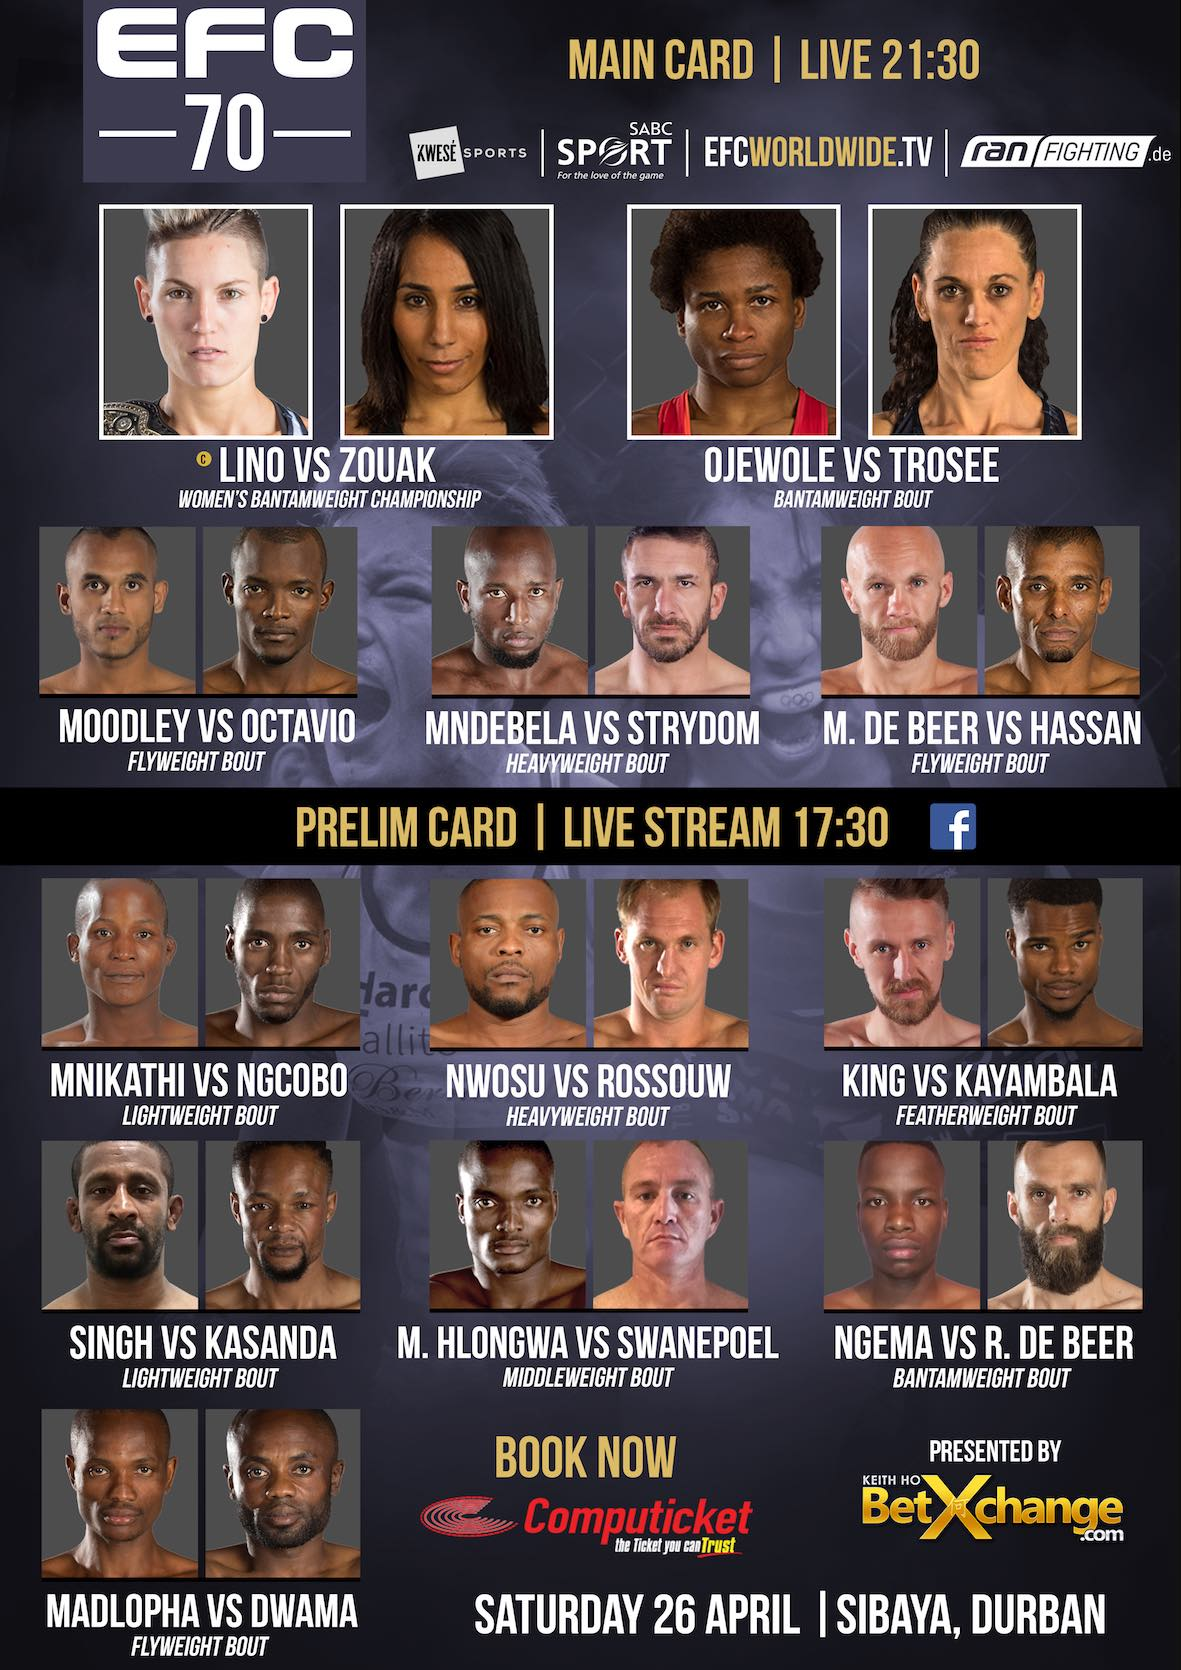 Mixed Martial Arts action coming to Durban with 12 exciting fights at EFC 70